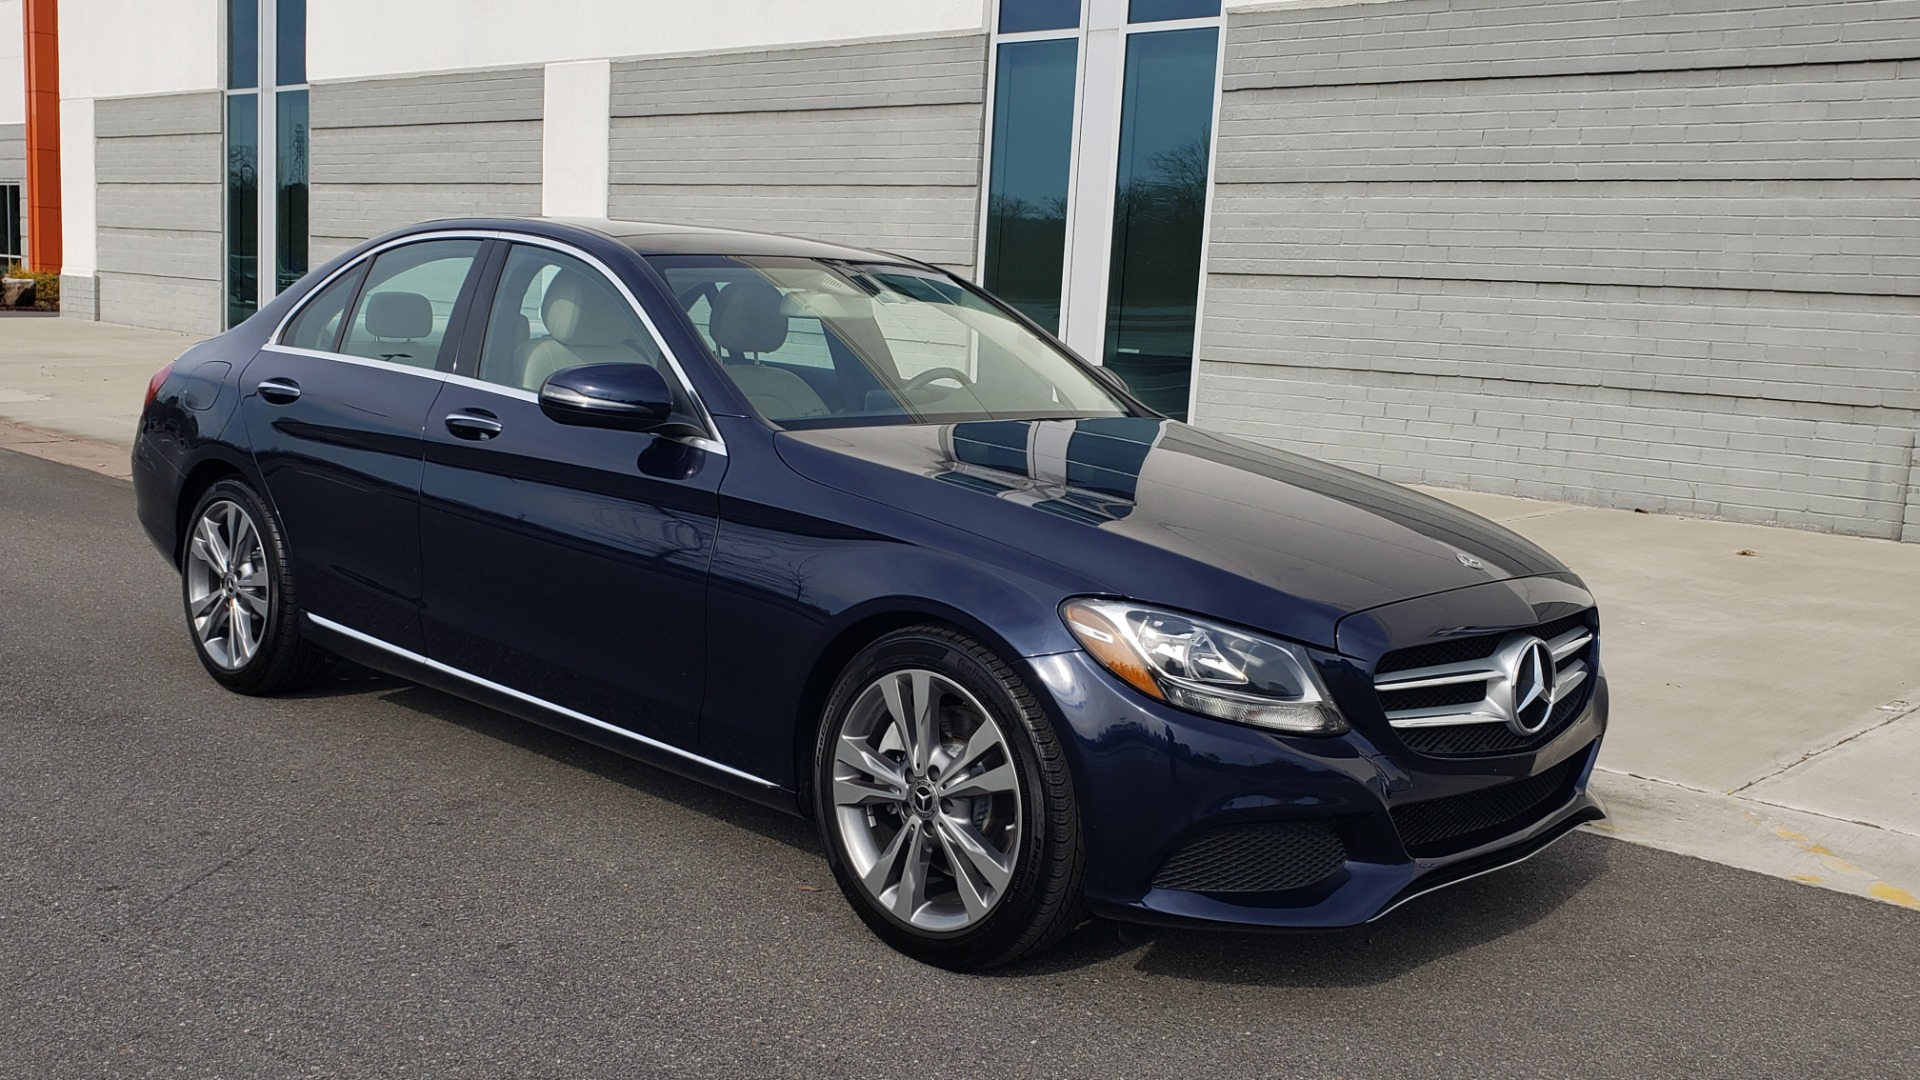 Used 2018 Mercedes-Benz C-CLASS C 300 PREMIUM / PANO-ROOF / HTD STST / APPL CARPLAY / REARVIEW for sale Sold at Formula Imports in Charlotte NC 28227 10